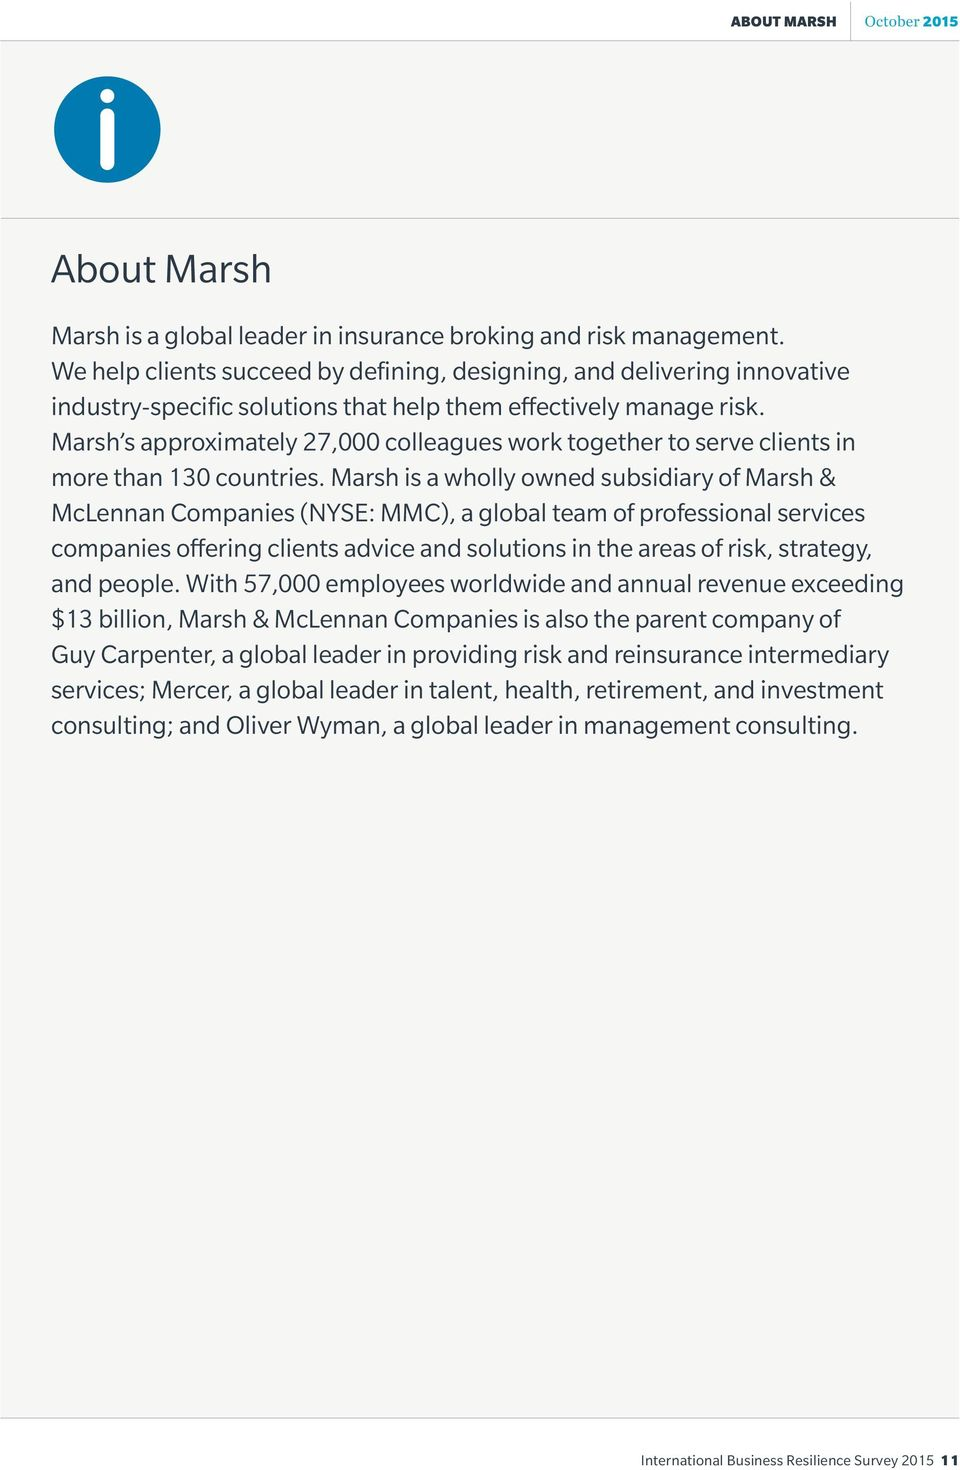 Marsh s approximately 27,000 colleagues work together to serve clients in more than 130 countries.